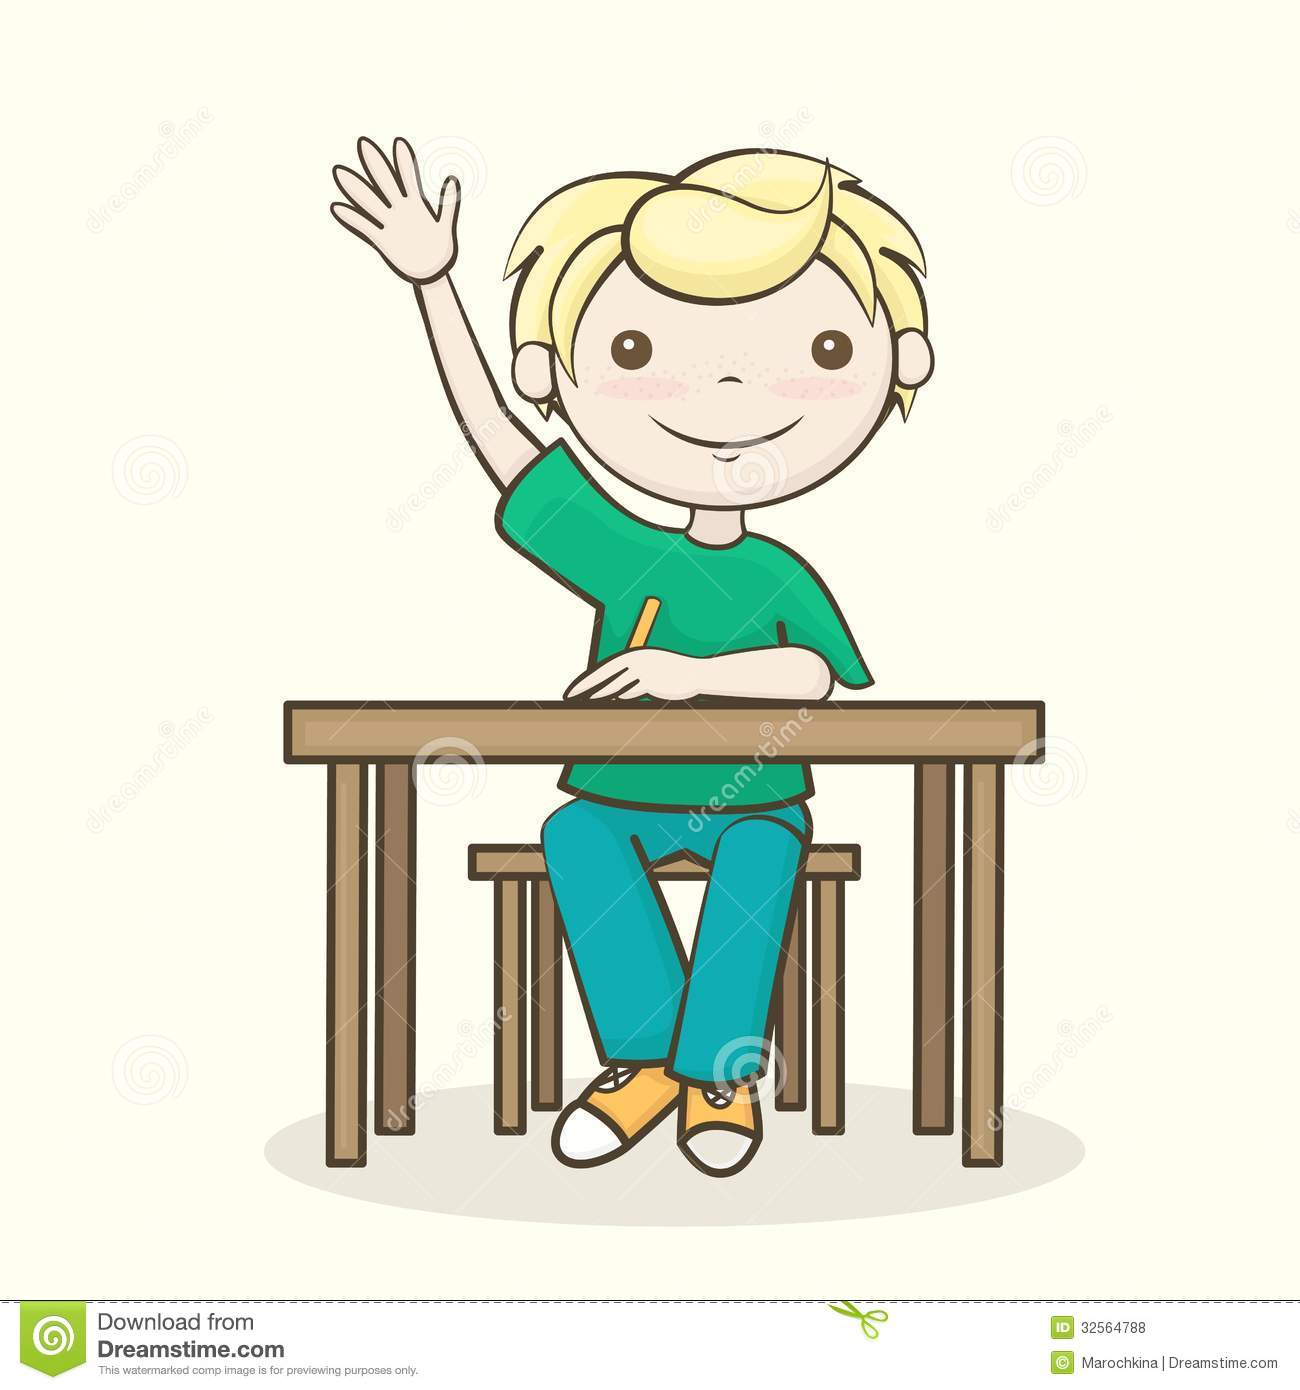 Student raise your hand . - Student Raising Hand Clipart